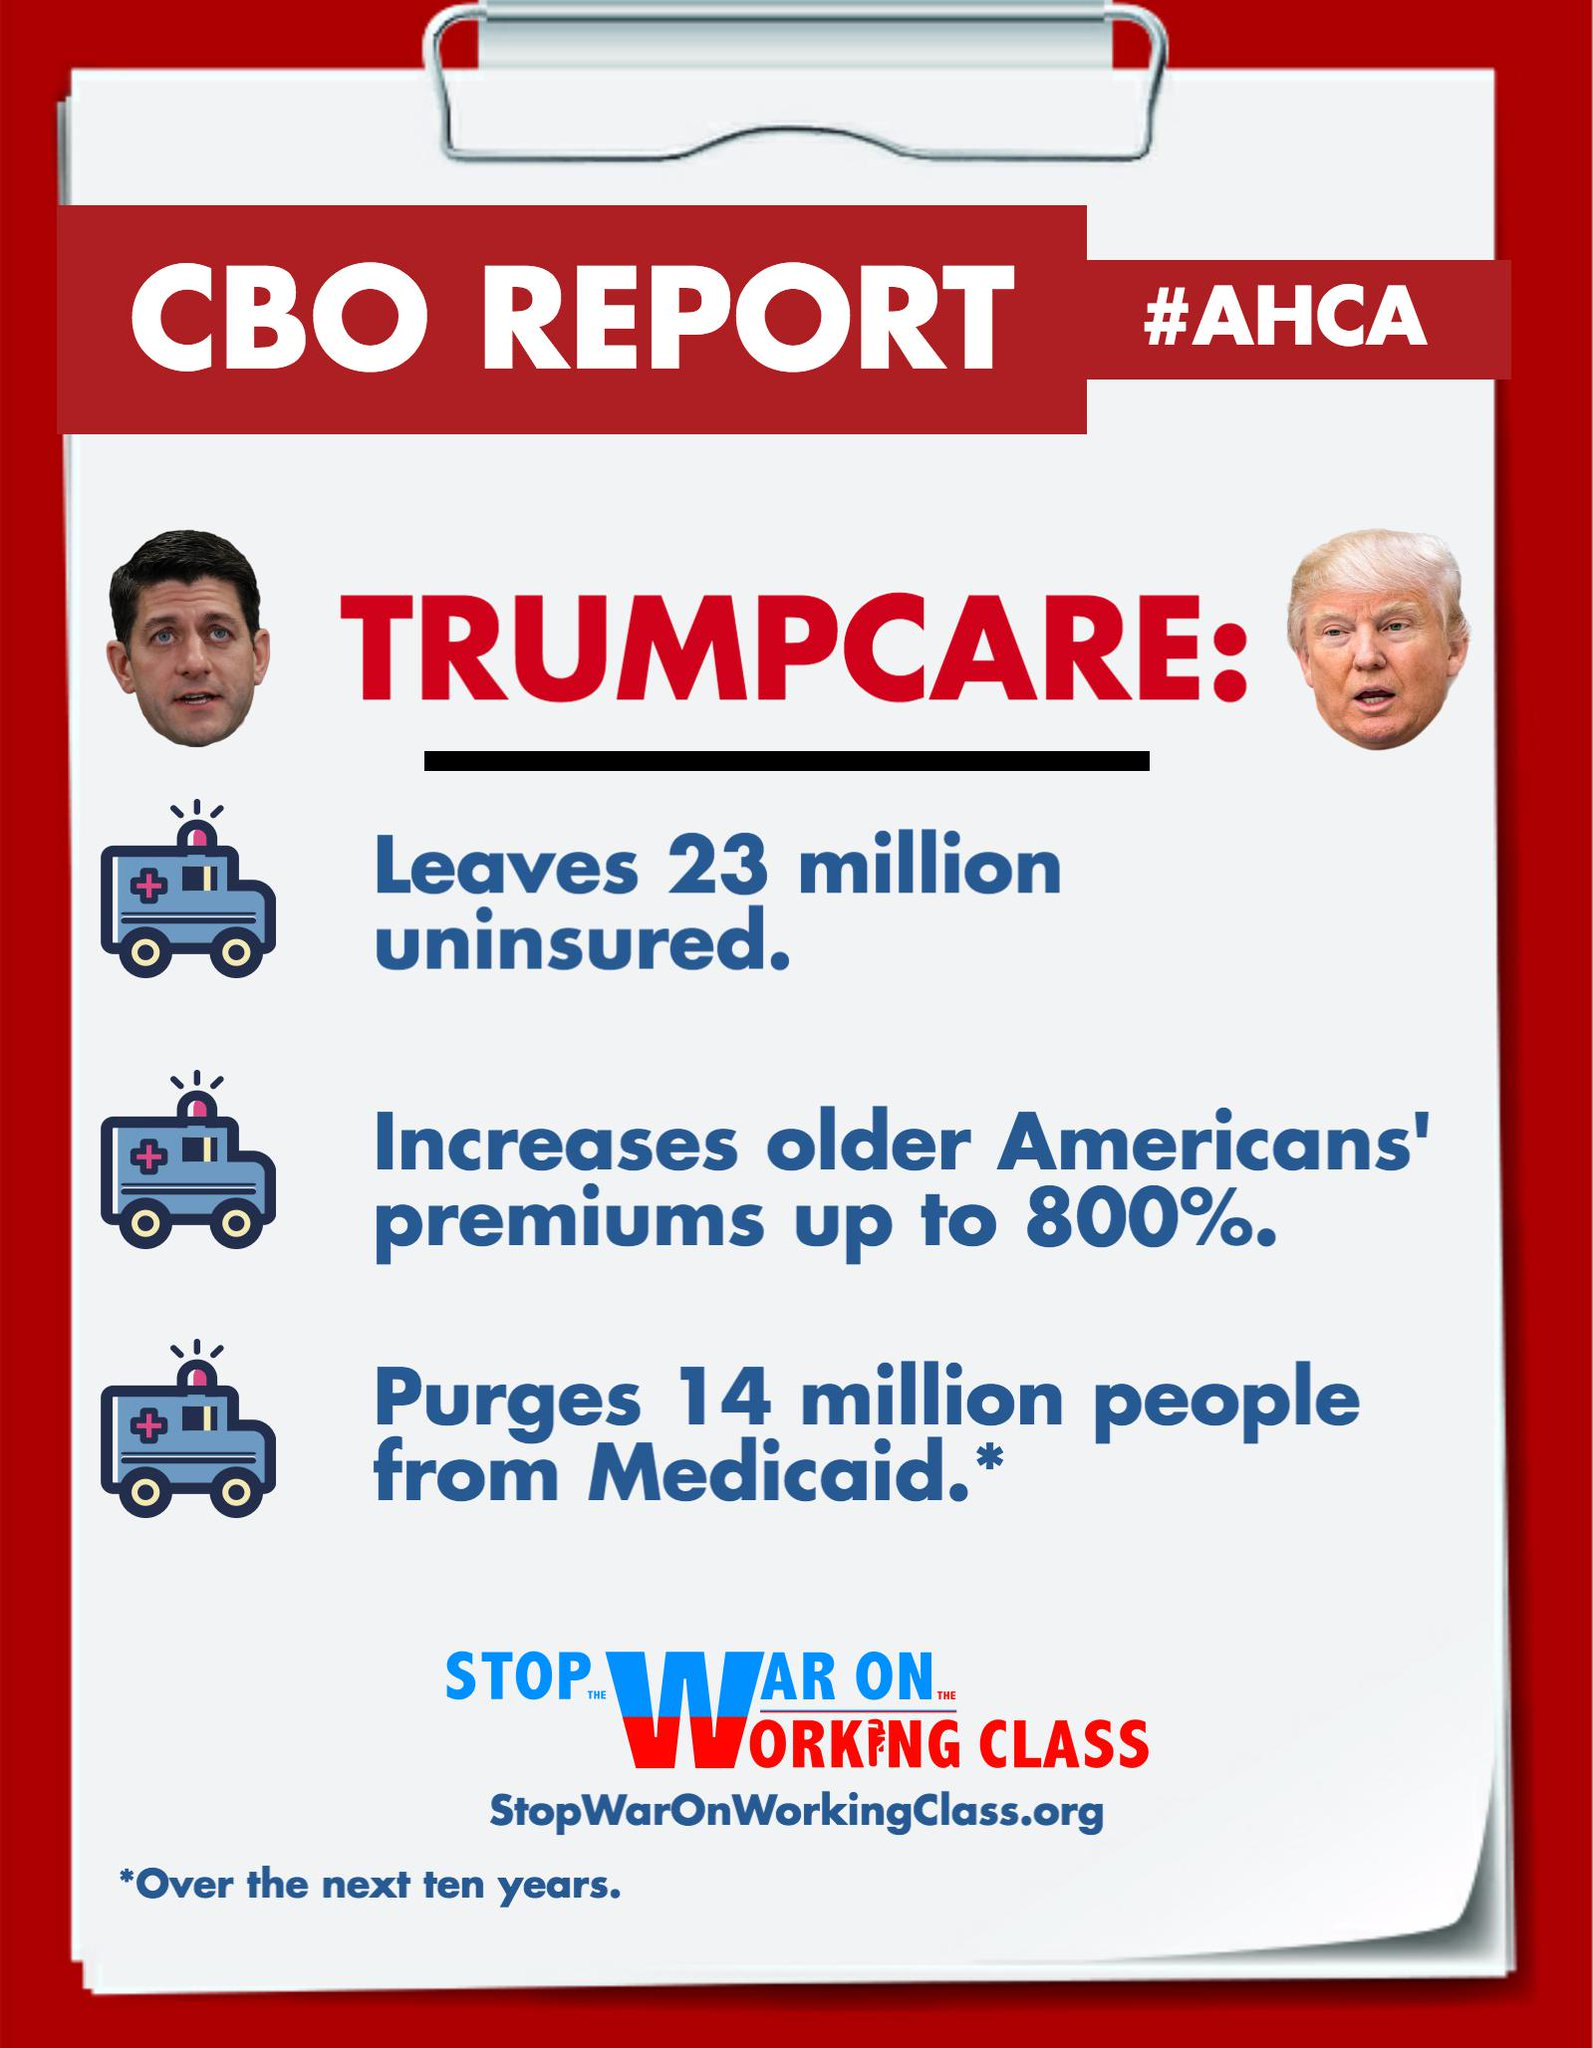 Seniors who rely on Medicaid will suffer under the GOP #AHCA/#Trumpcare: https://t.co/rrdPNEzGhU https://t.co/pxnpG82NRI